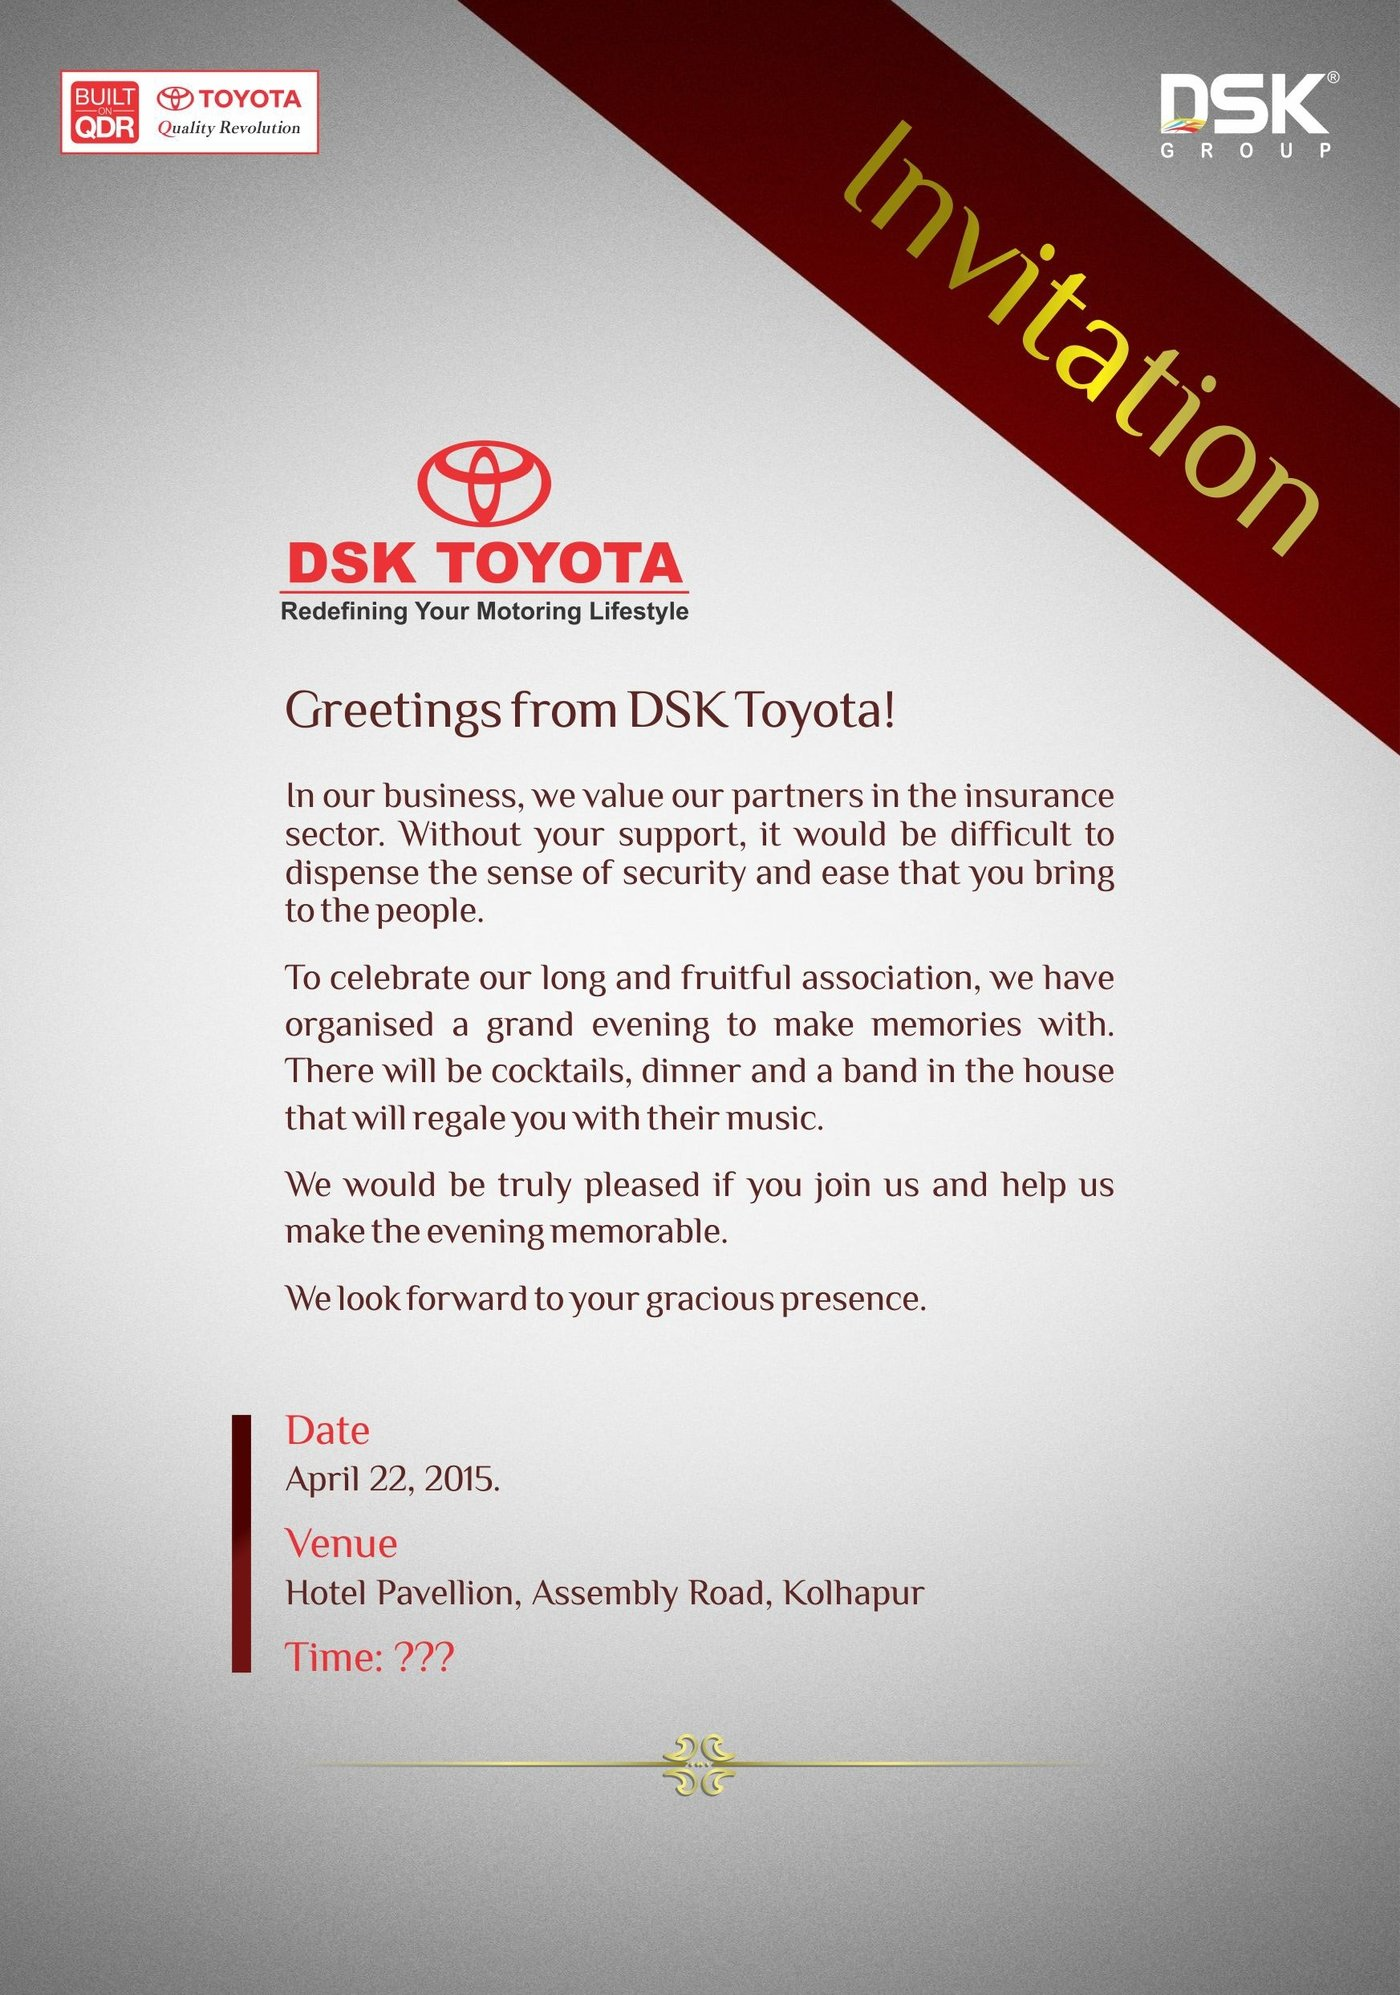 DSK Toyota by Satish Malusare at Coroflot com